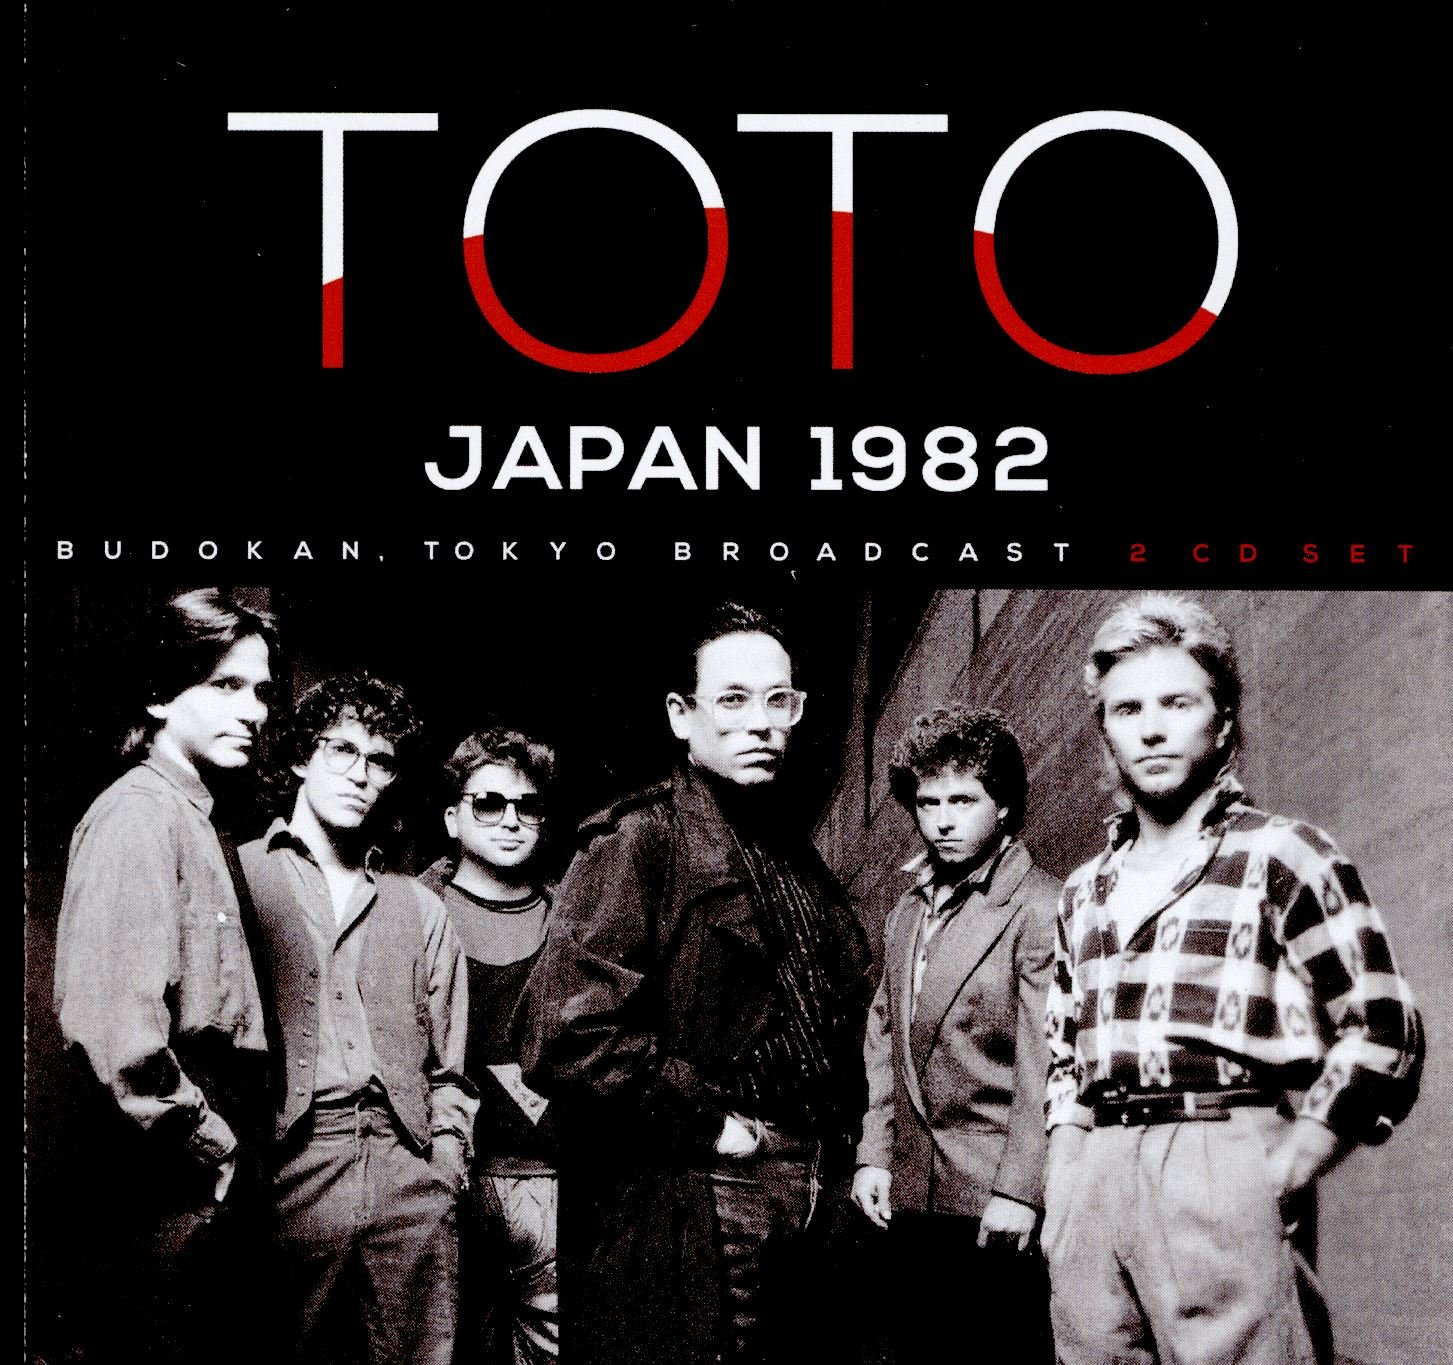 Japan 1982 (2CD SET): Amazon.co.uk: Music